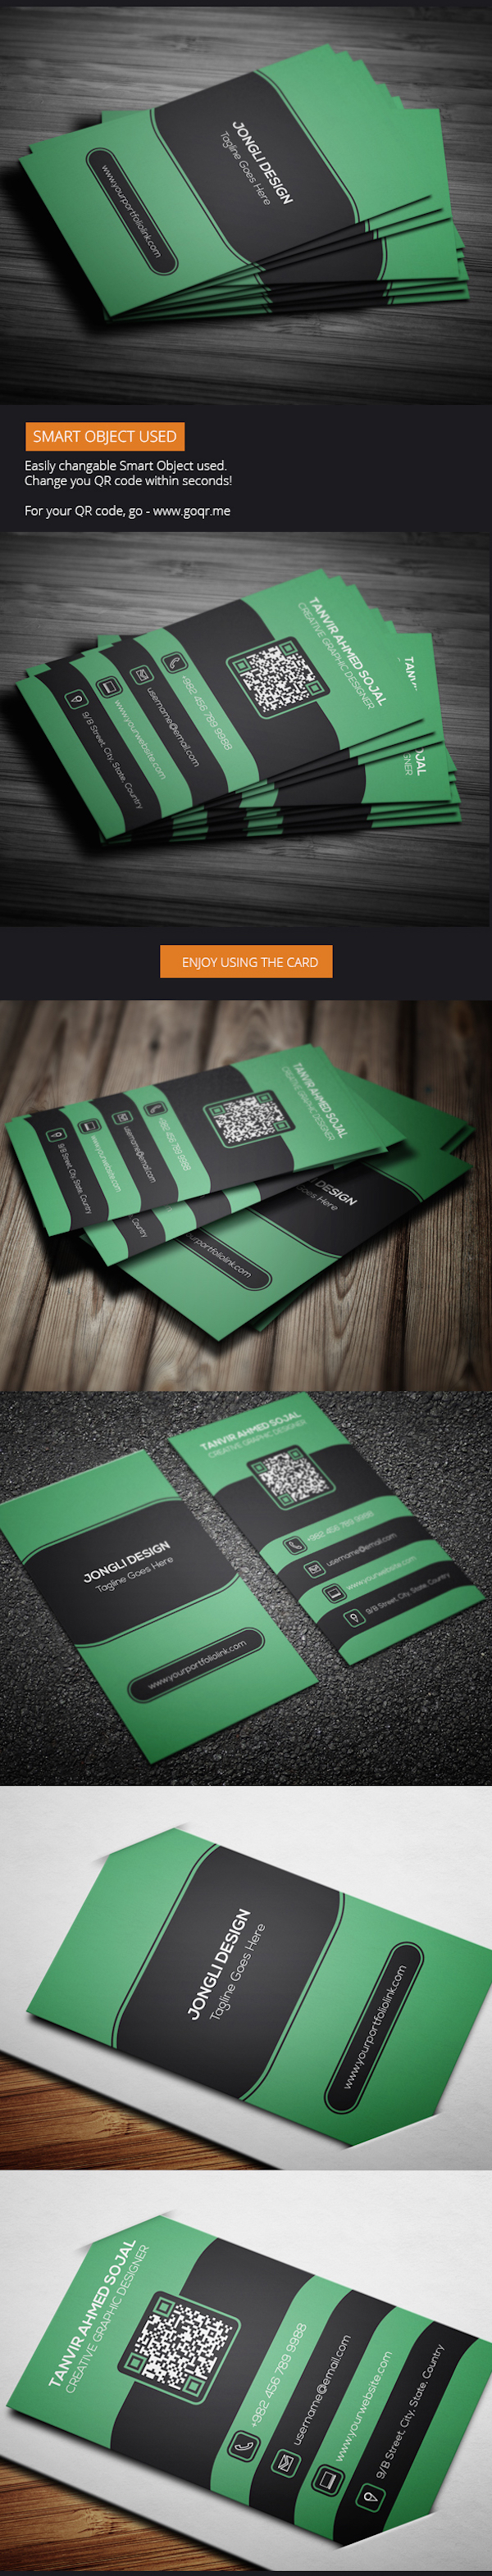 40 latest free business card psd templates devzum free business card psd templates reheart Images